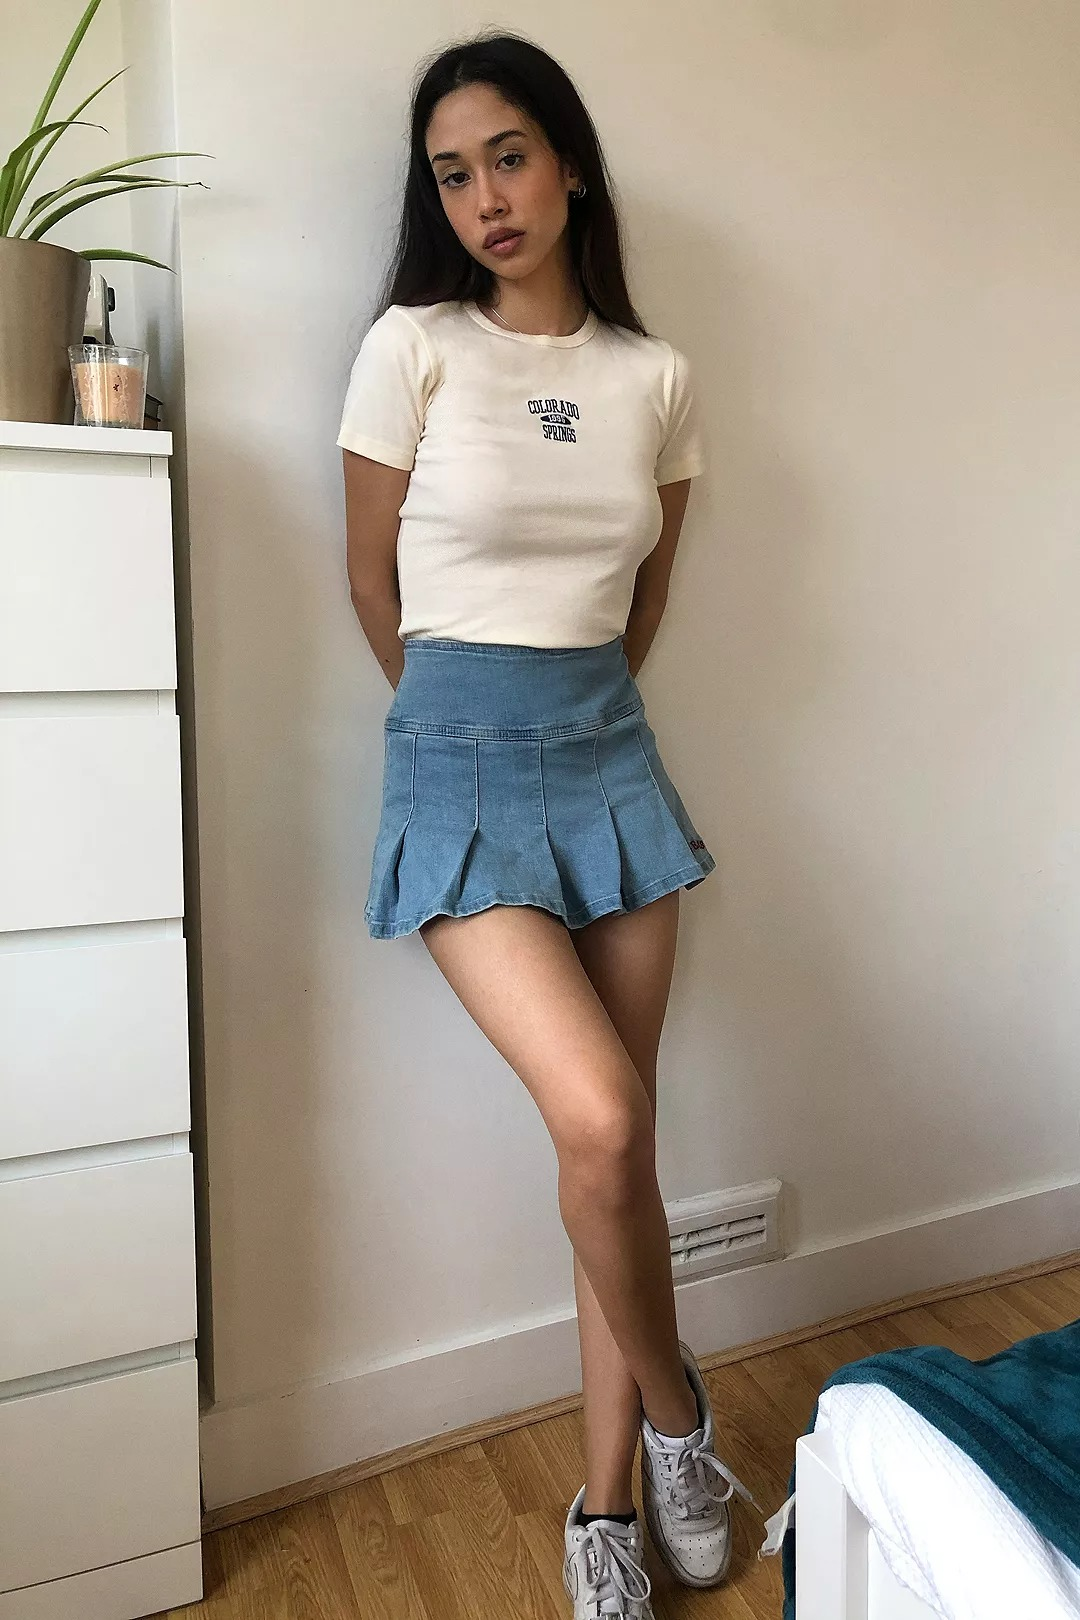 Cute 90s aesthetic outfits with skirt